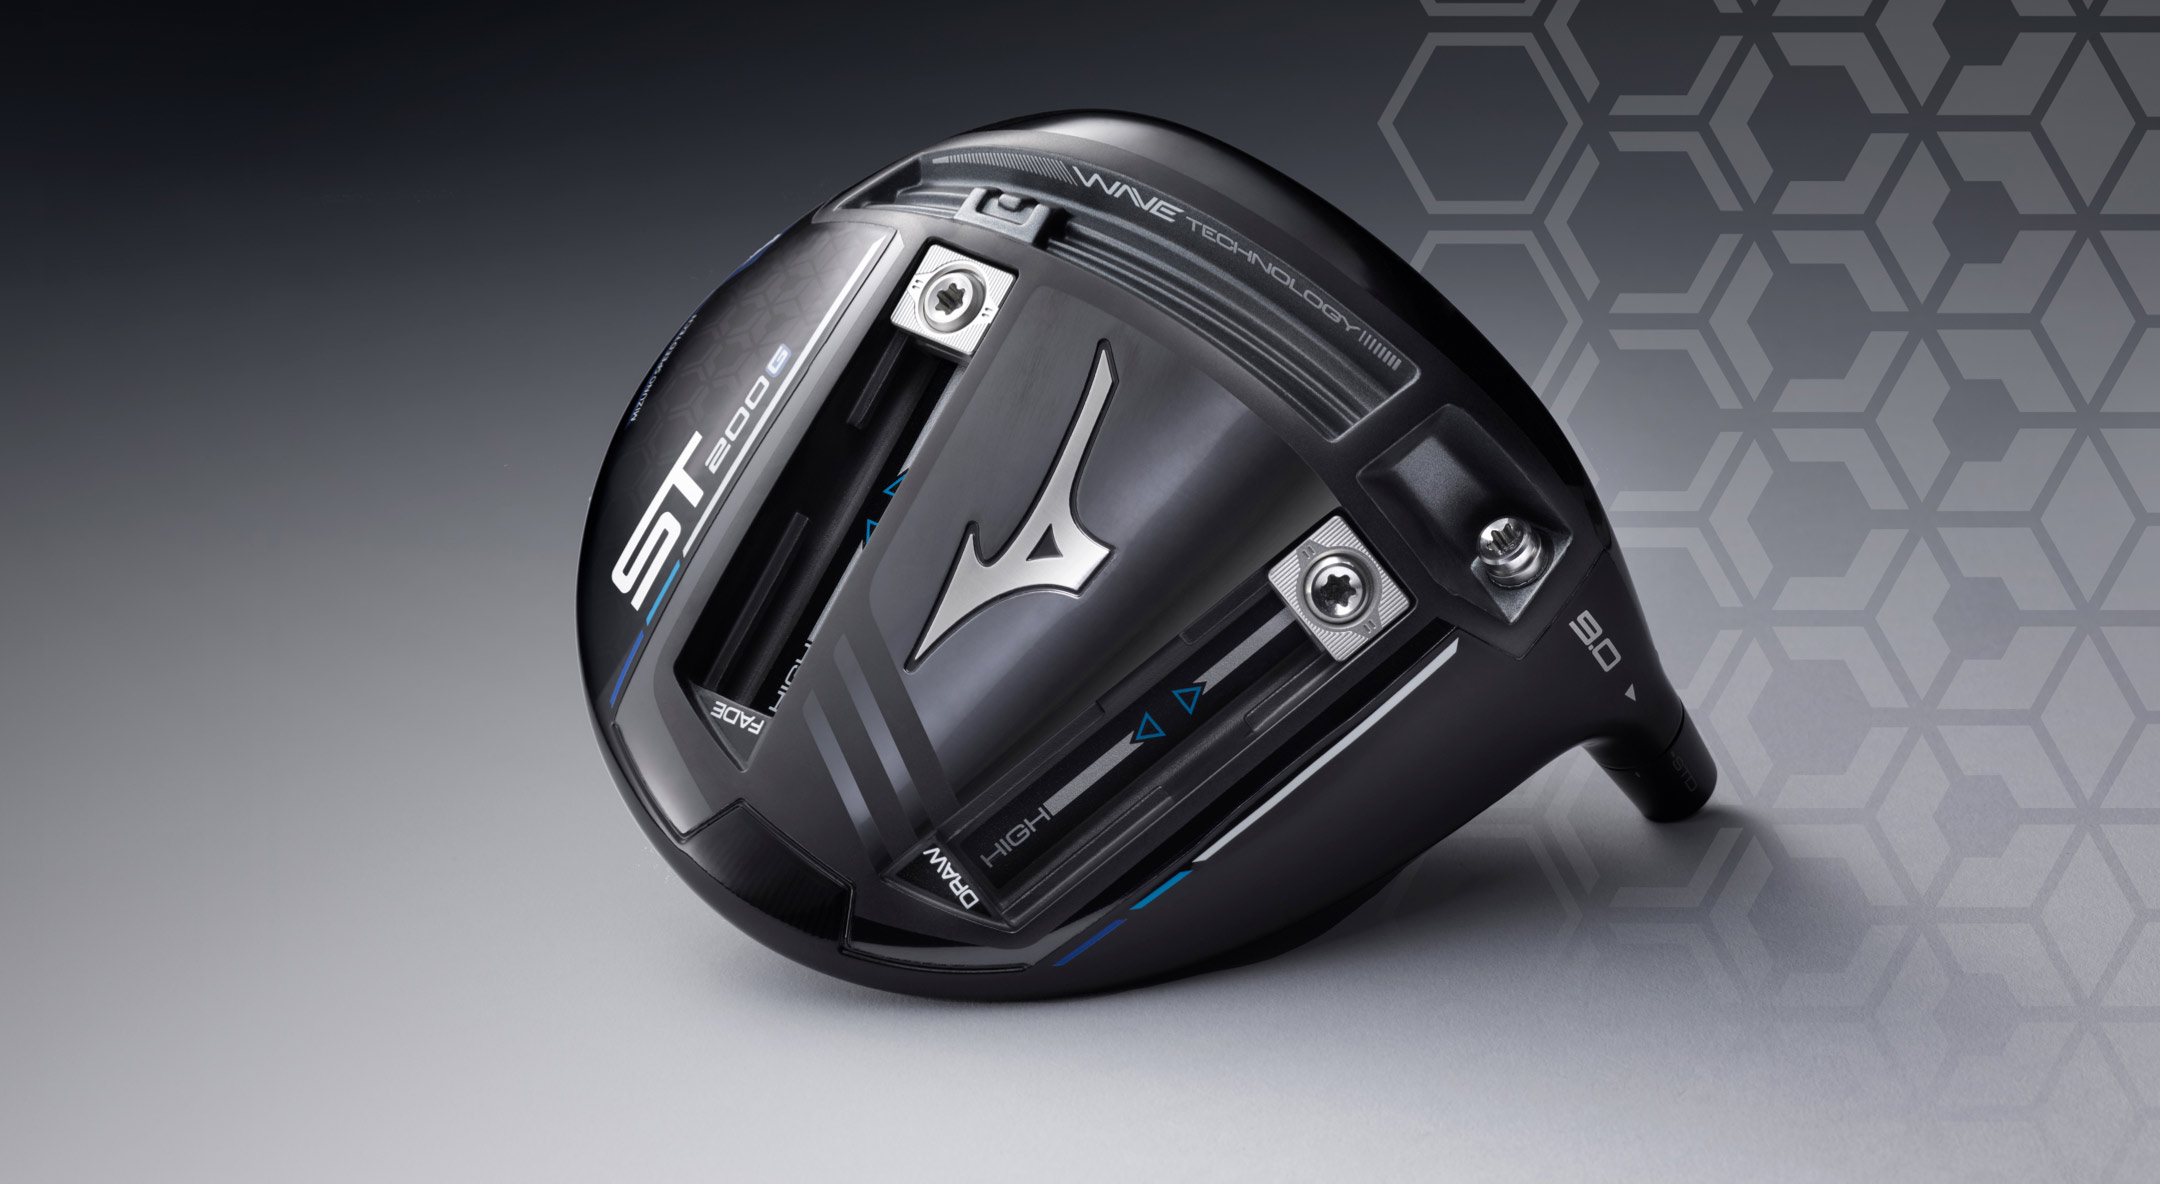 ST200G Driver